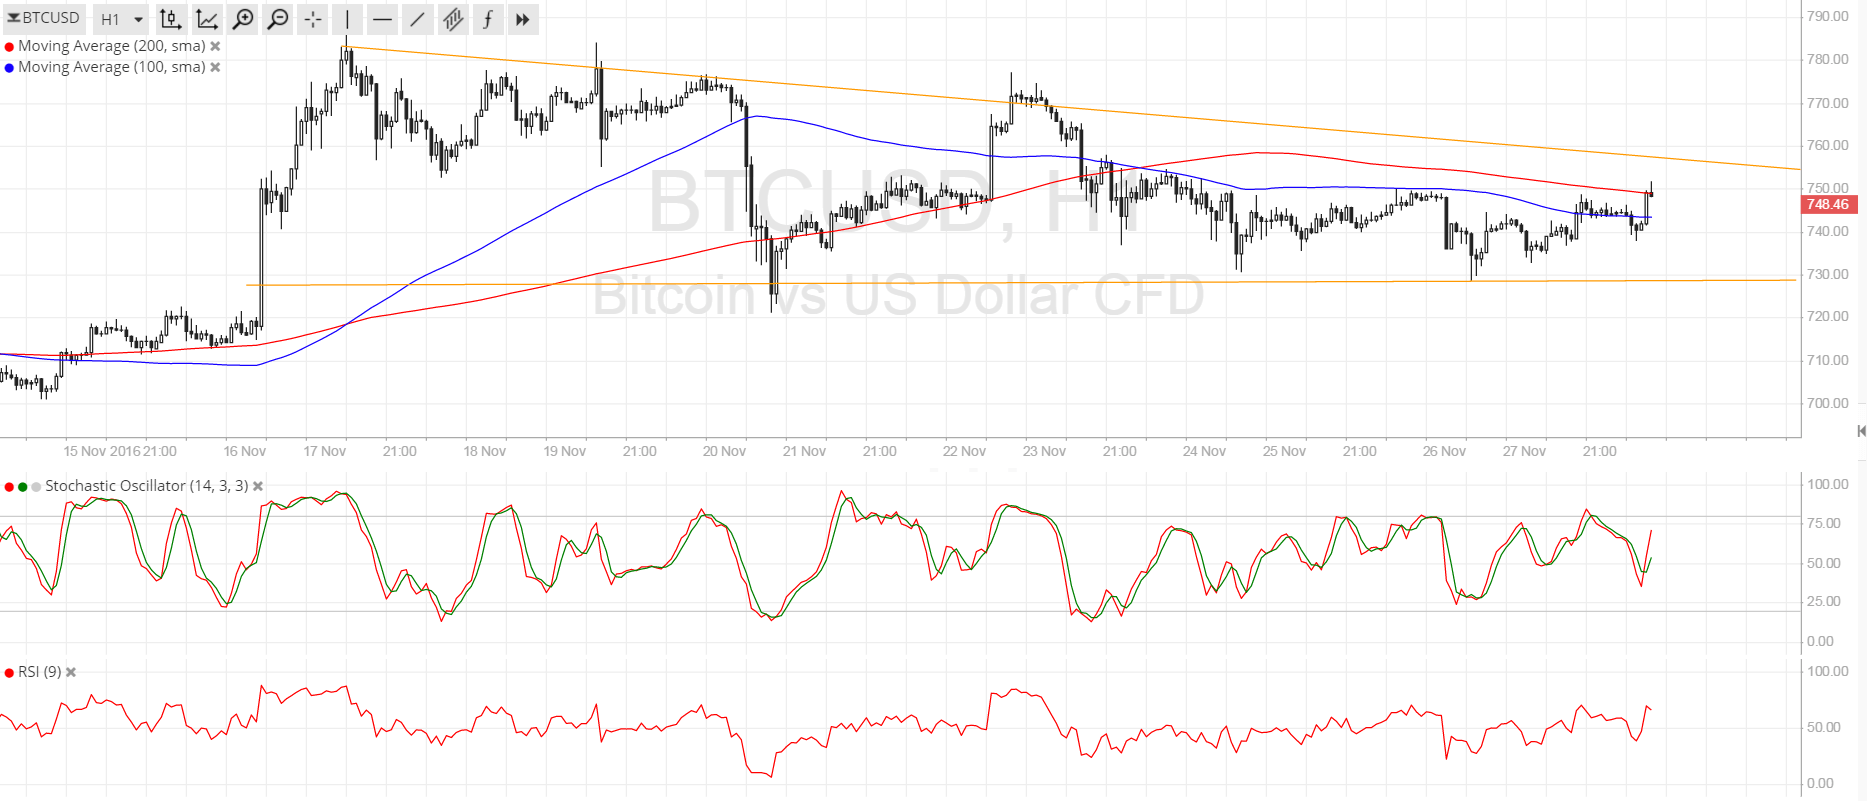 Bitcoin Price Technical Analysis for 11/28/2016 - Poised for a Breakout This Week?